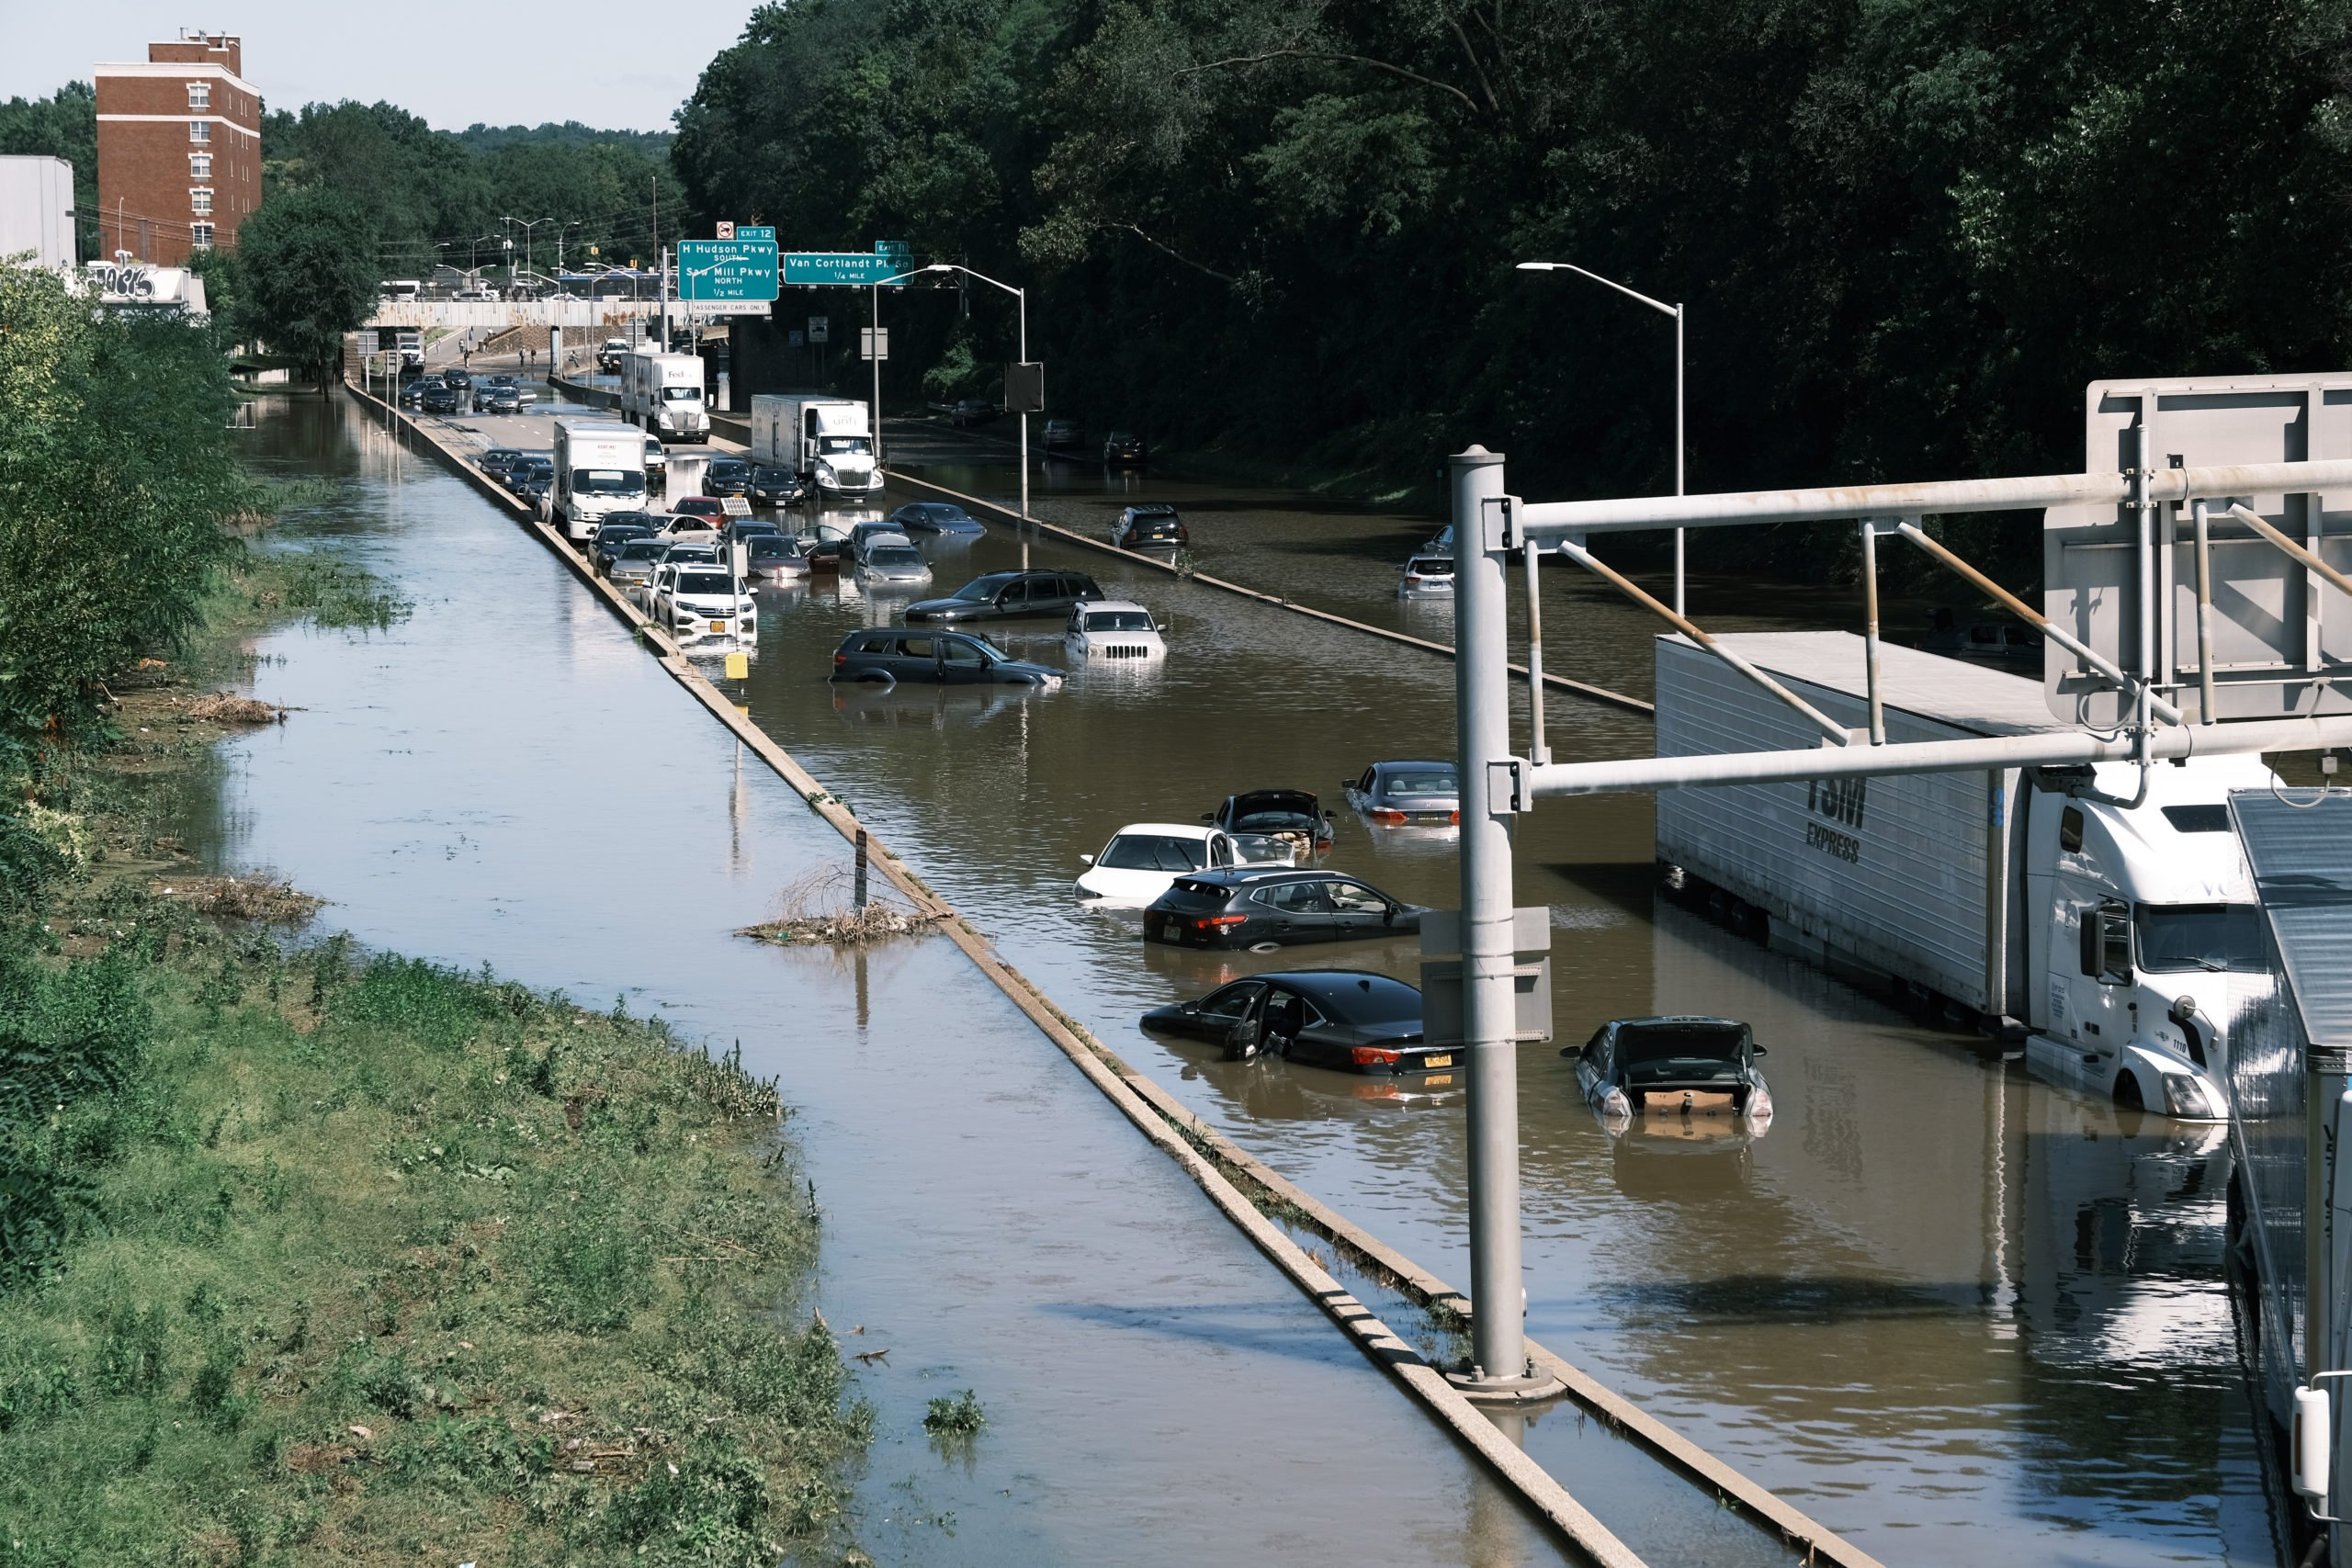 Cars sit abandoned on the flooded Major Deegan Expressway in New York City on Sept. 2. (Spencer Platt/Getty Images)